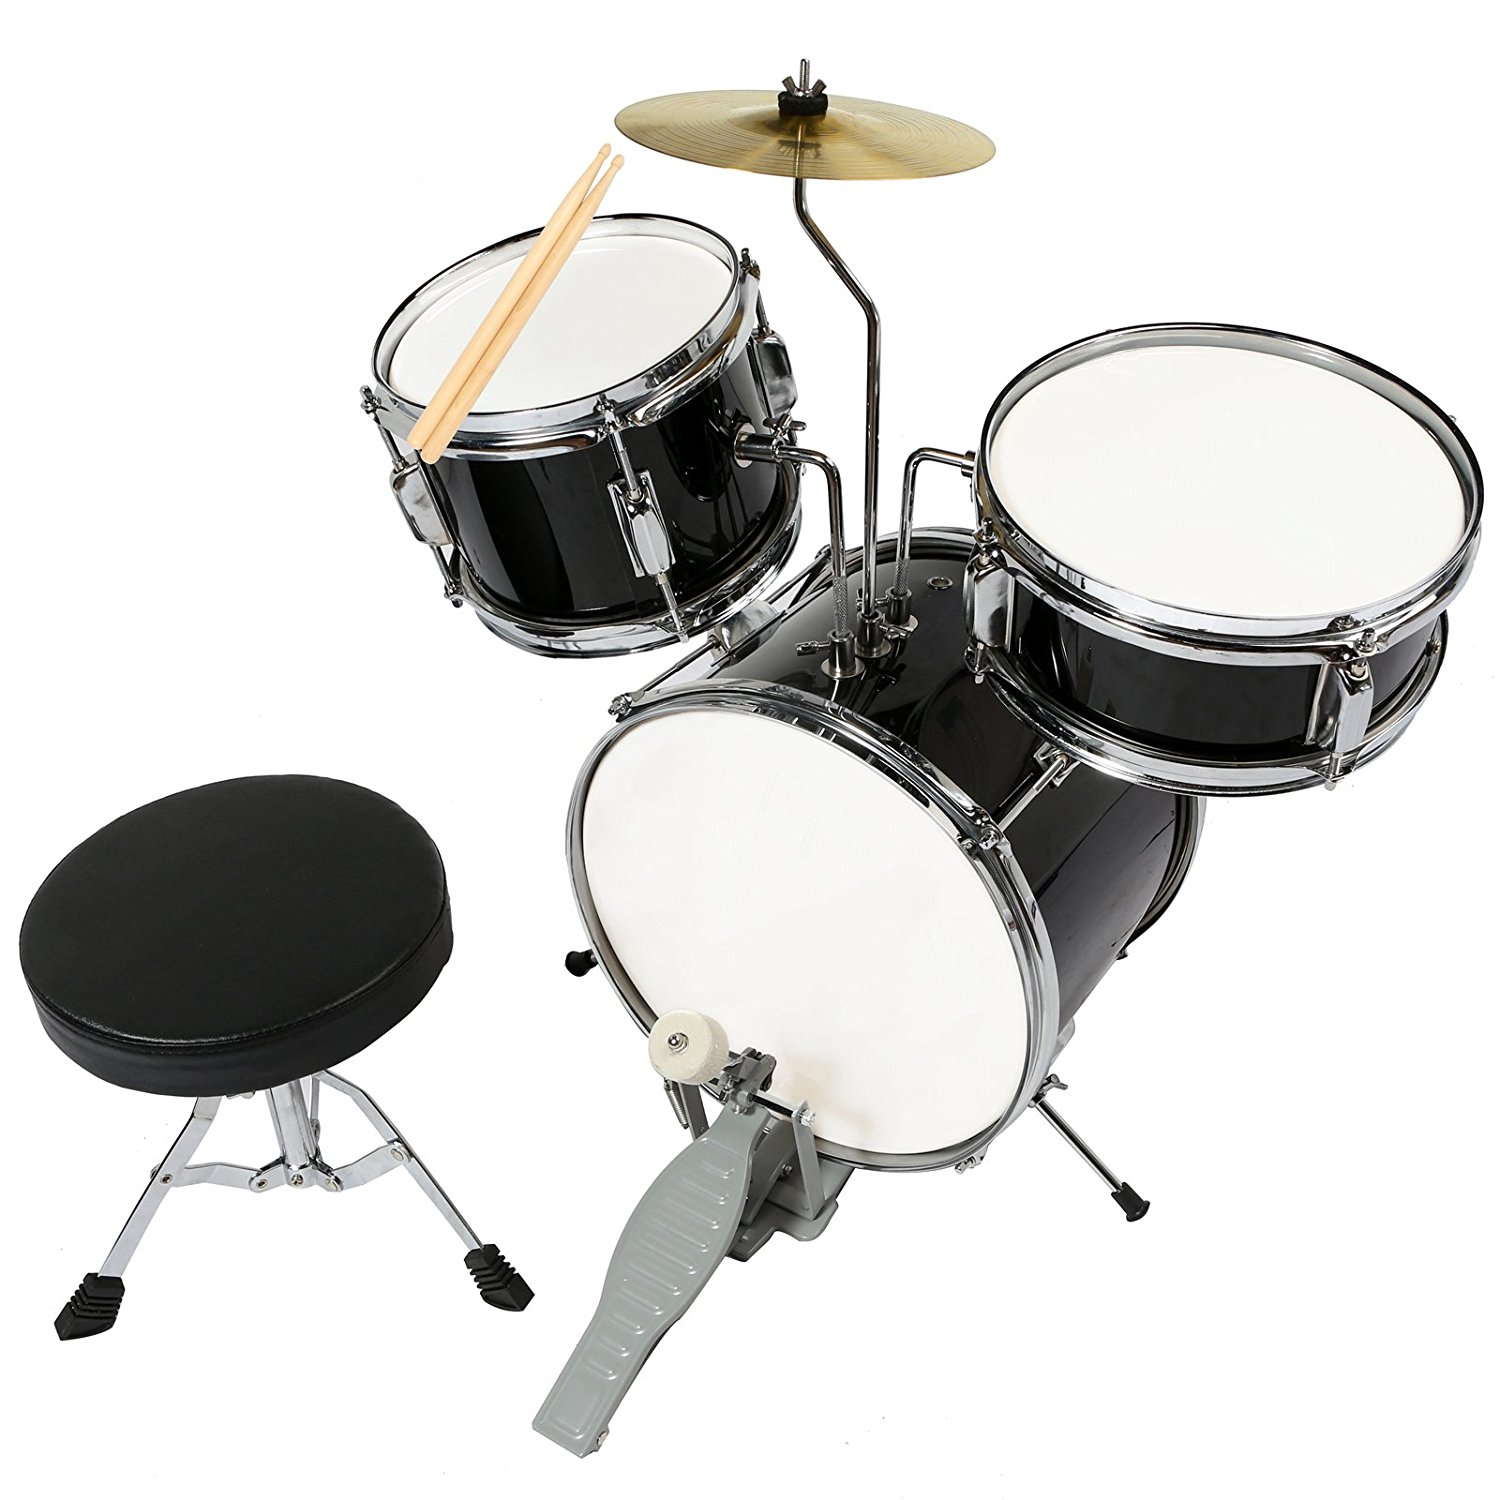 "13"" 3 Piece Complete Junior Drum Set Cymbal Child Kids Kit w  Stool Sticks Black by Uenjoy"